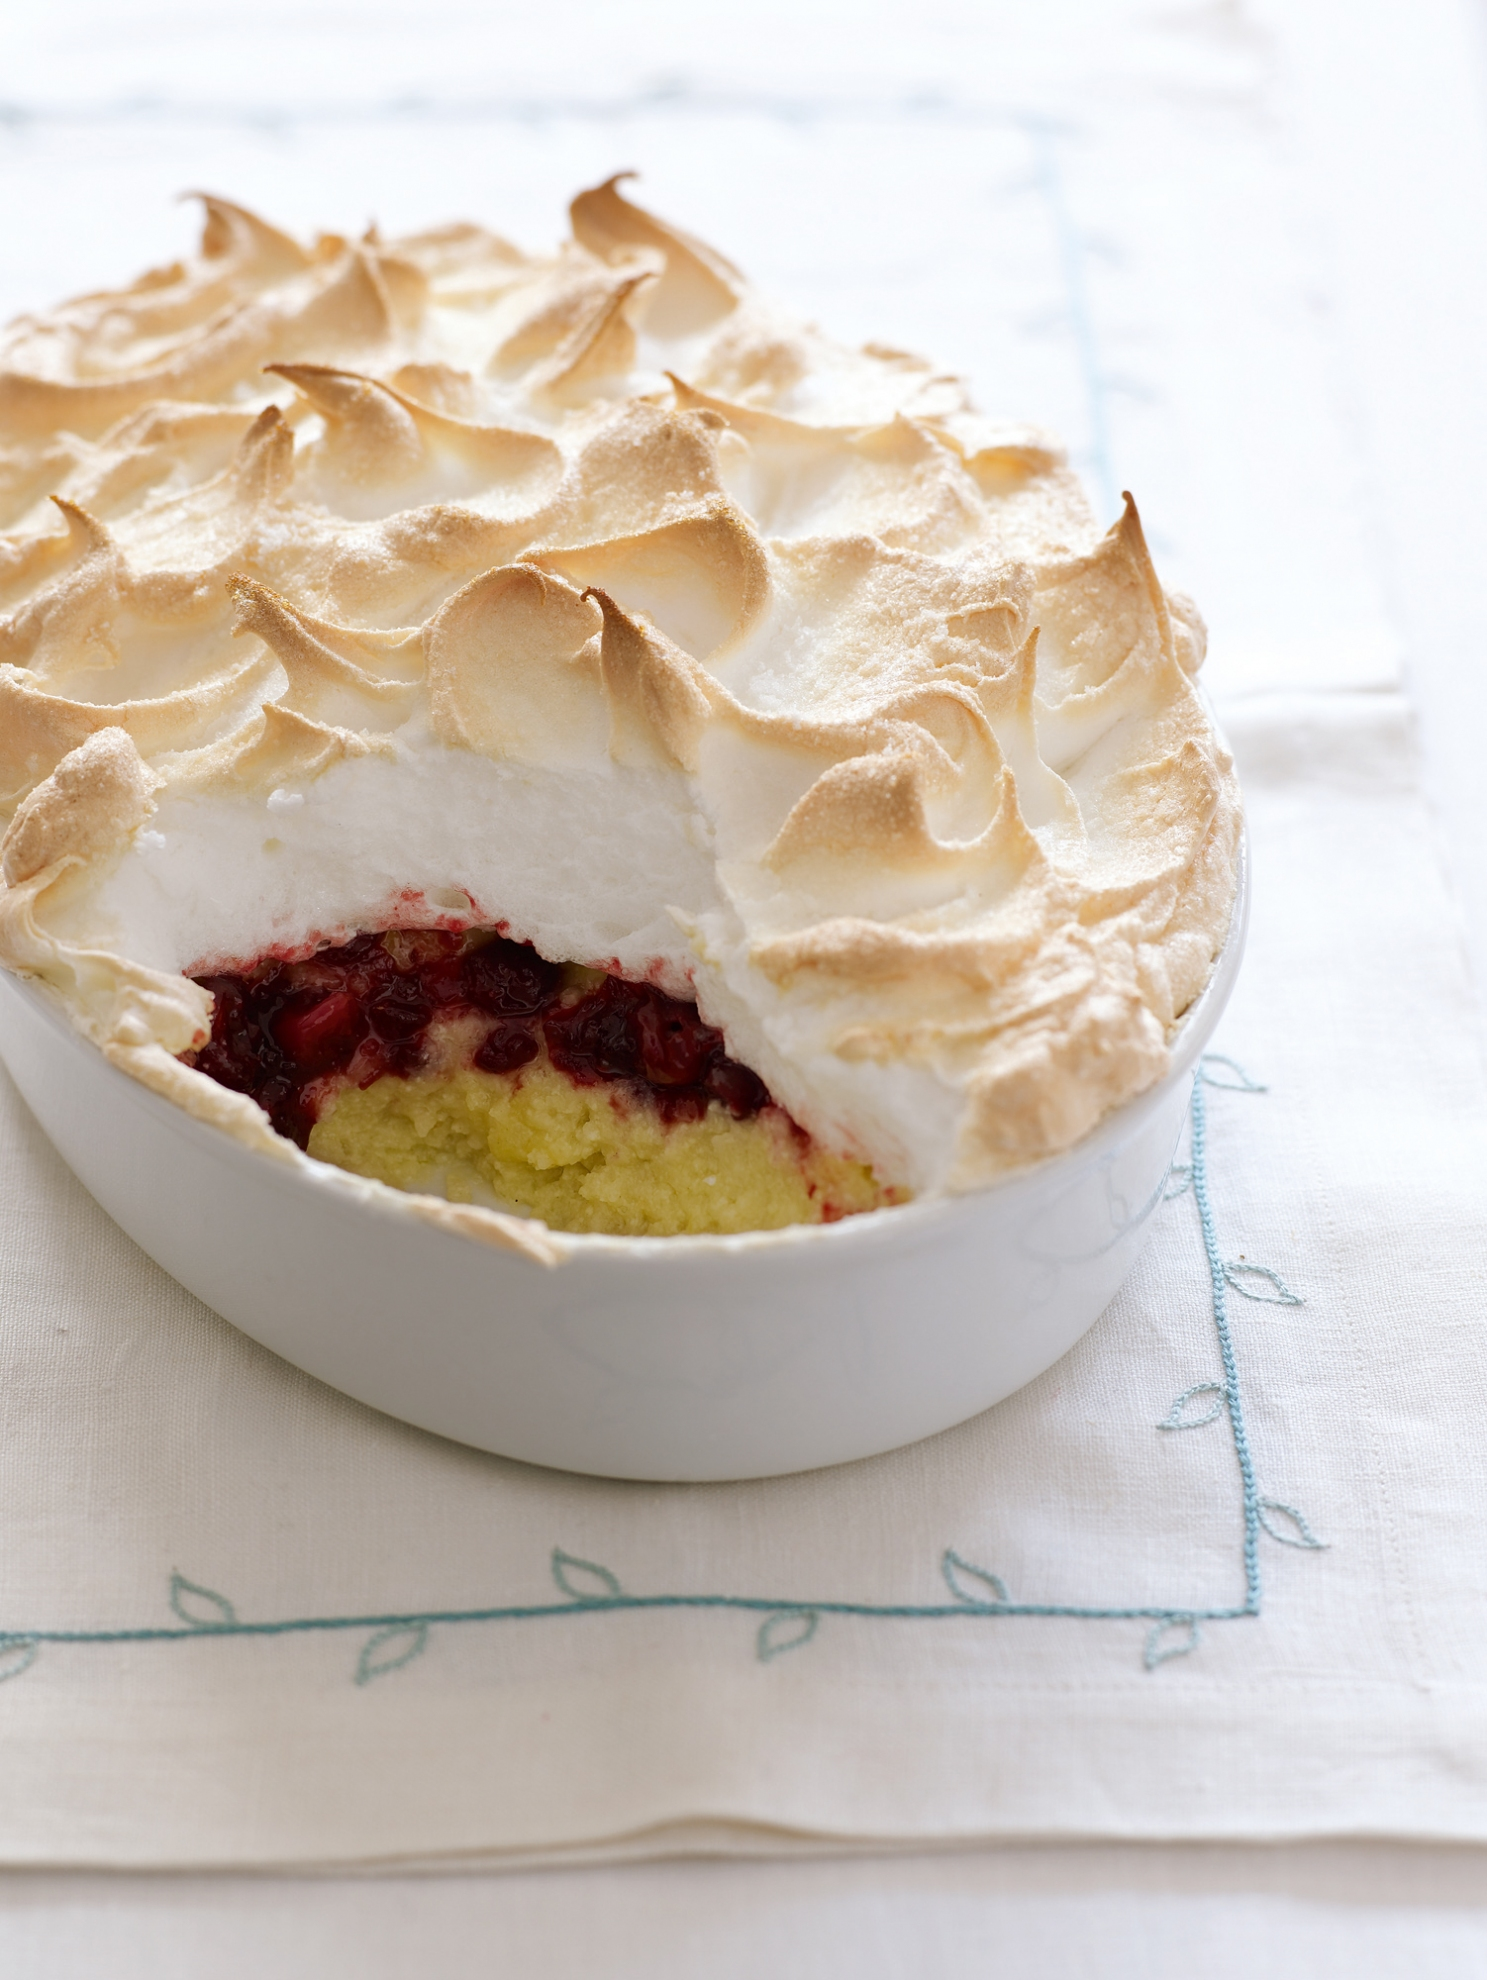 How to Make Queen of Puddings How to Make Queen of Puddings new images